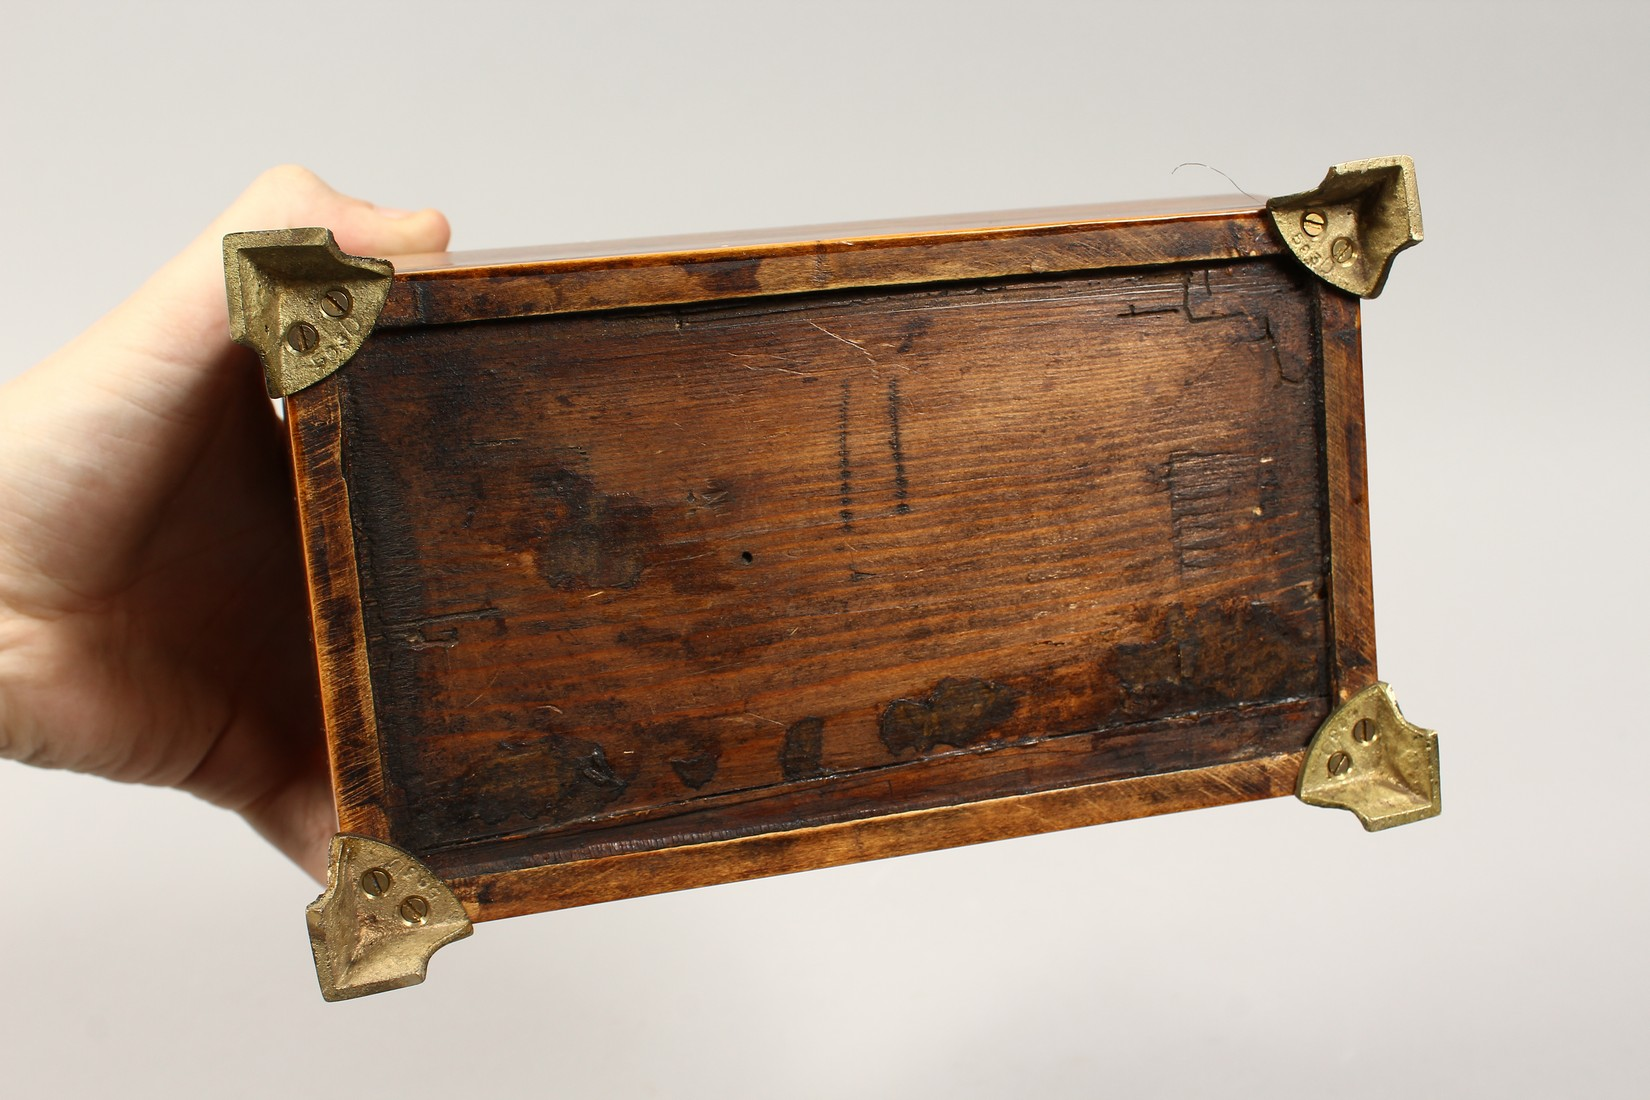 A REGENCY ROSEWOOD DOMED TOP TWO DIVISION TEA CADDY with iron escutcheon on brass bracket feet. 7. - Image 7 of 7